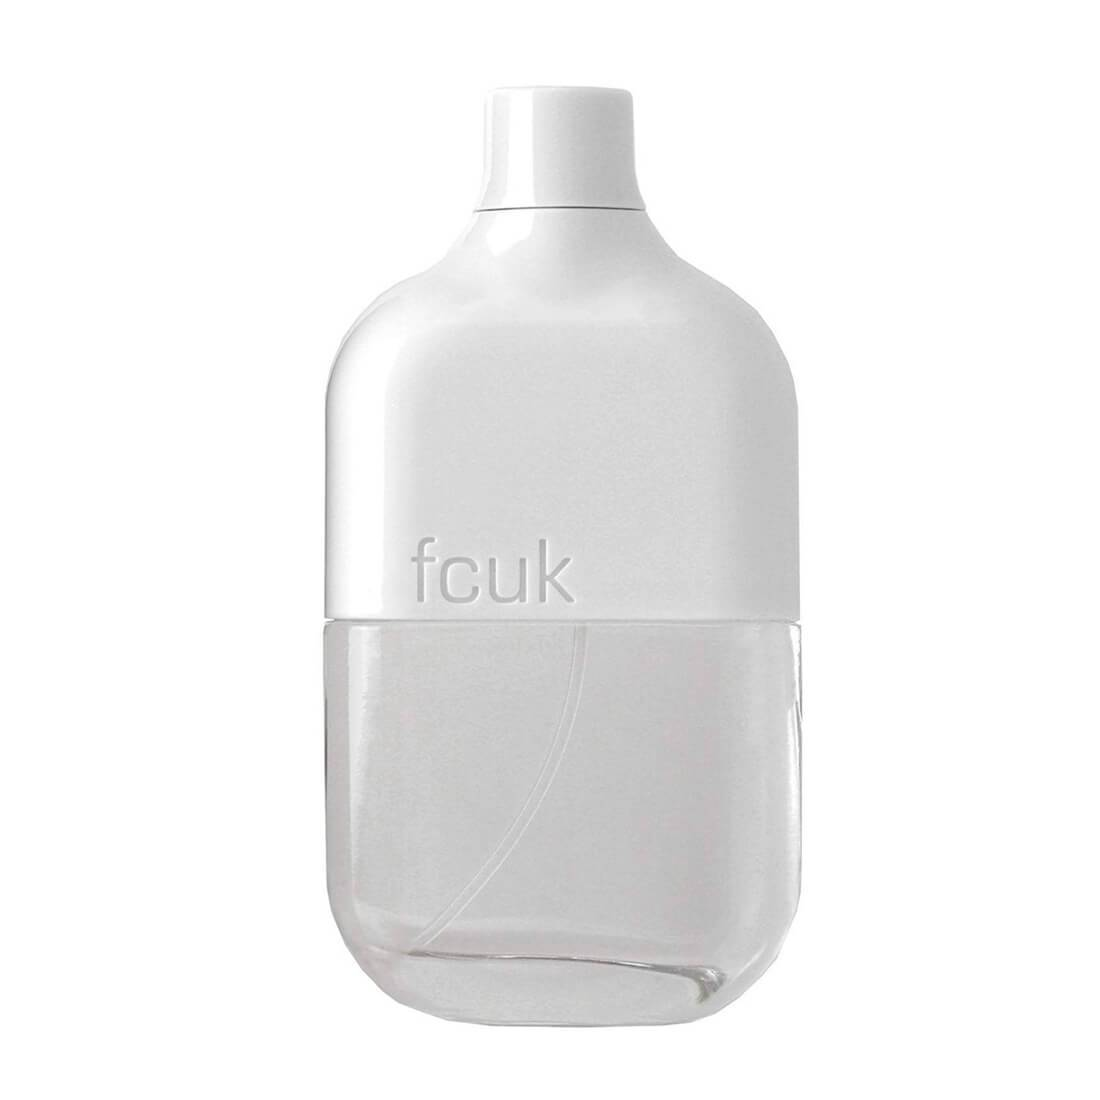 Fcuk Friction EDT Perfume For Men - 100ml